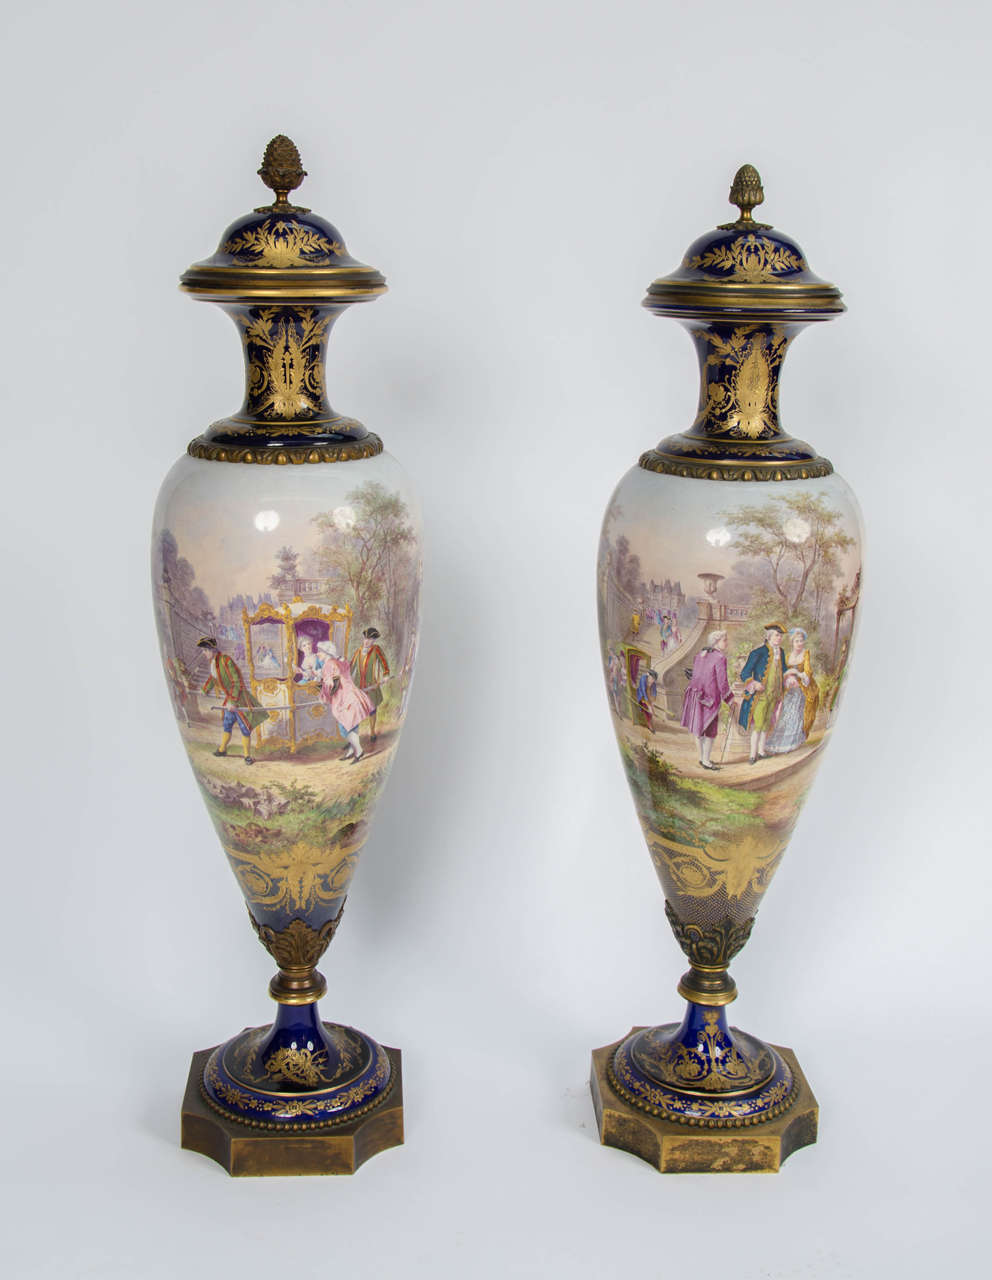 A very good quality pair of French Sèvres Porcelain, ormolu-mounted vases, depicting romantic scenes.  Signed; 'H. Desprez'.